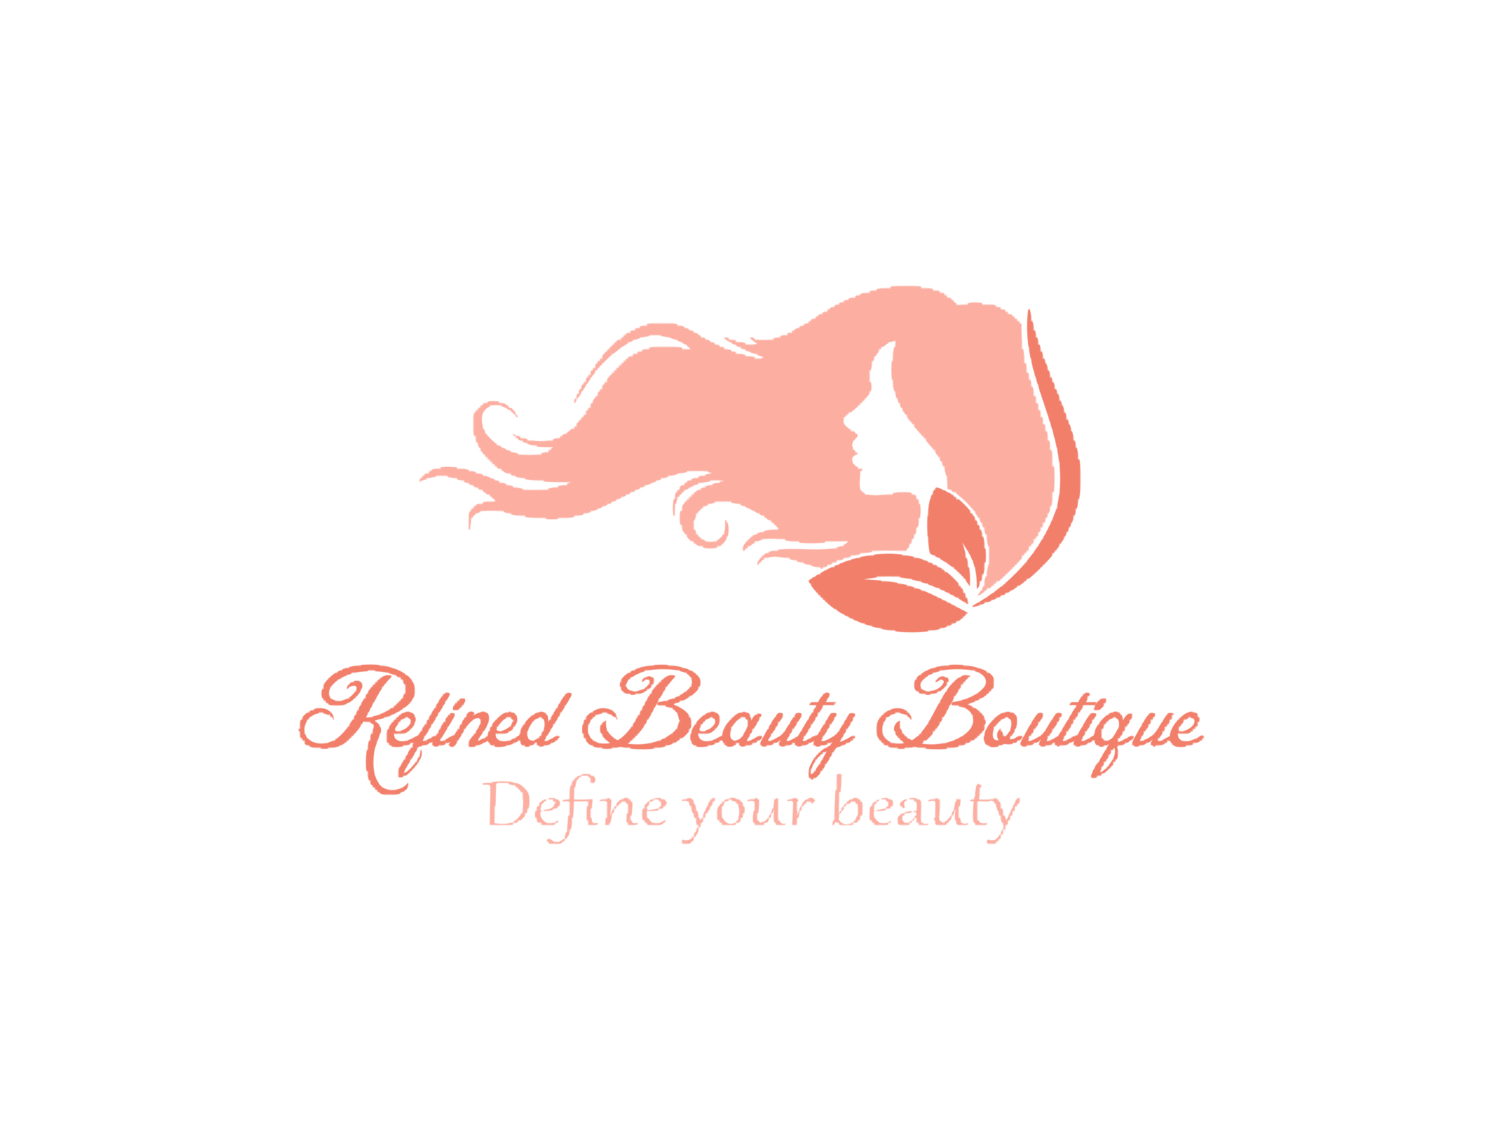 Refined Beauty Boutique